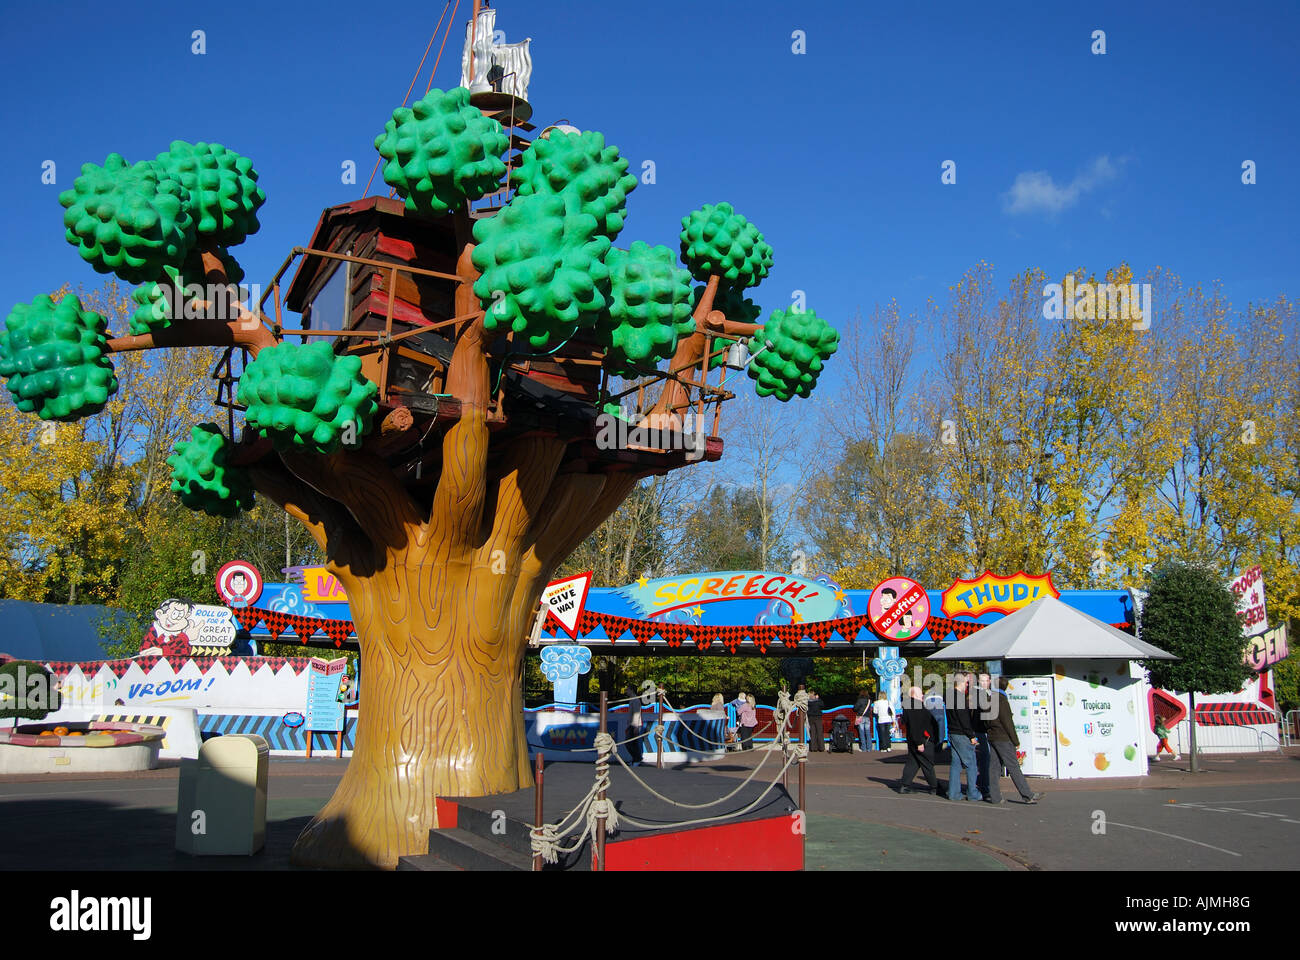 Denniss Tree House Beanoland Chessington World Of Adventures Theme Park Surrey UK England